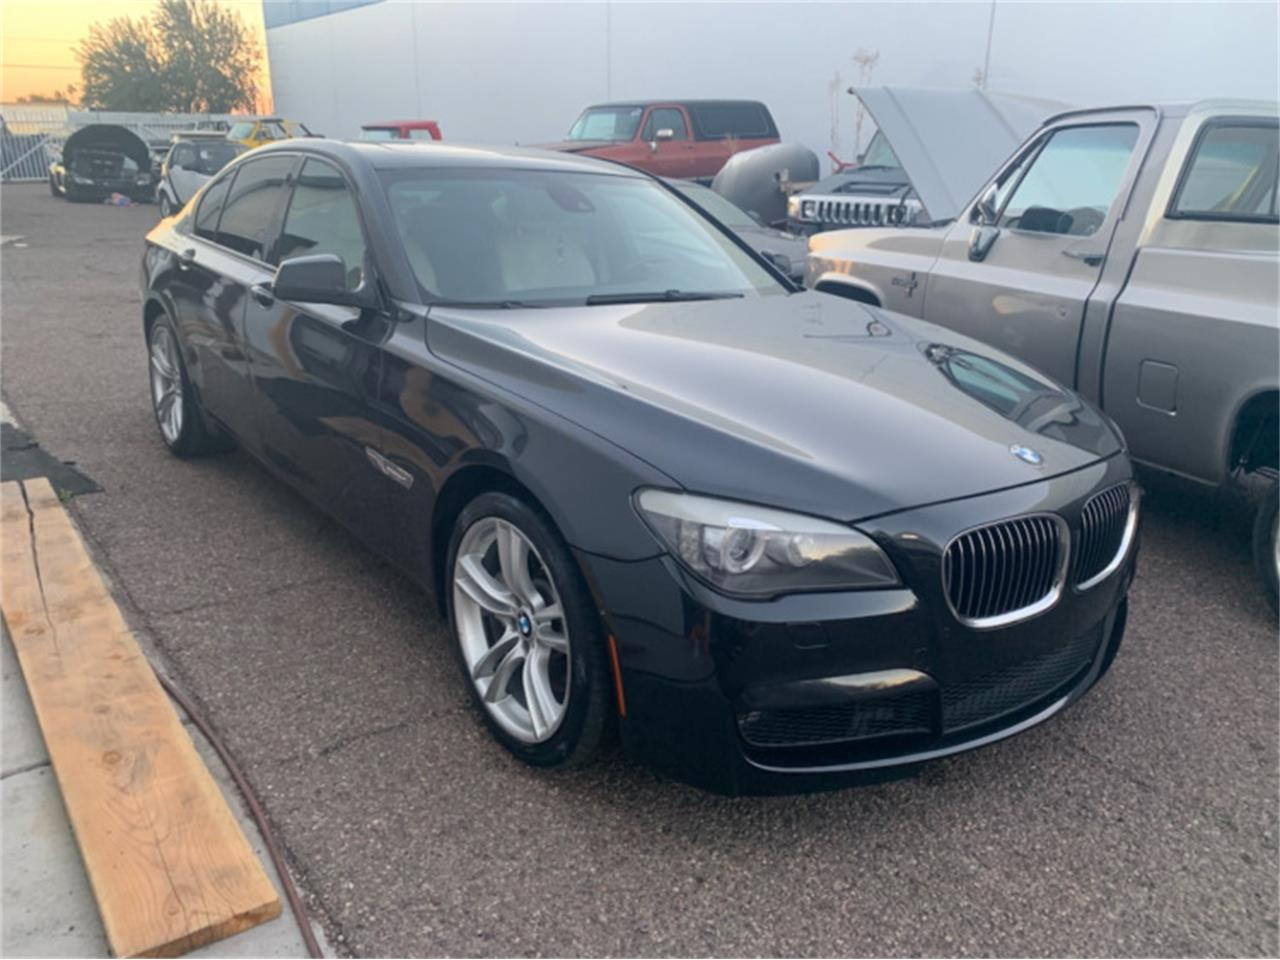 for sale at auction 2012 bmw 7 series in peoria, arizona cars - peoria, az at geebo